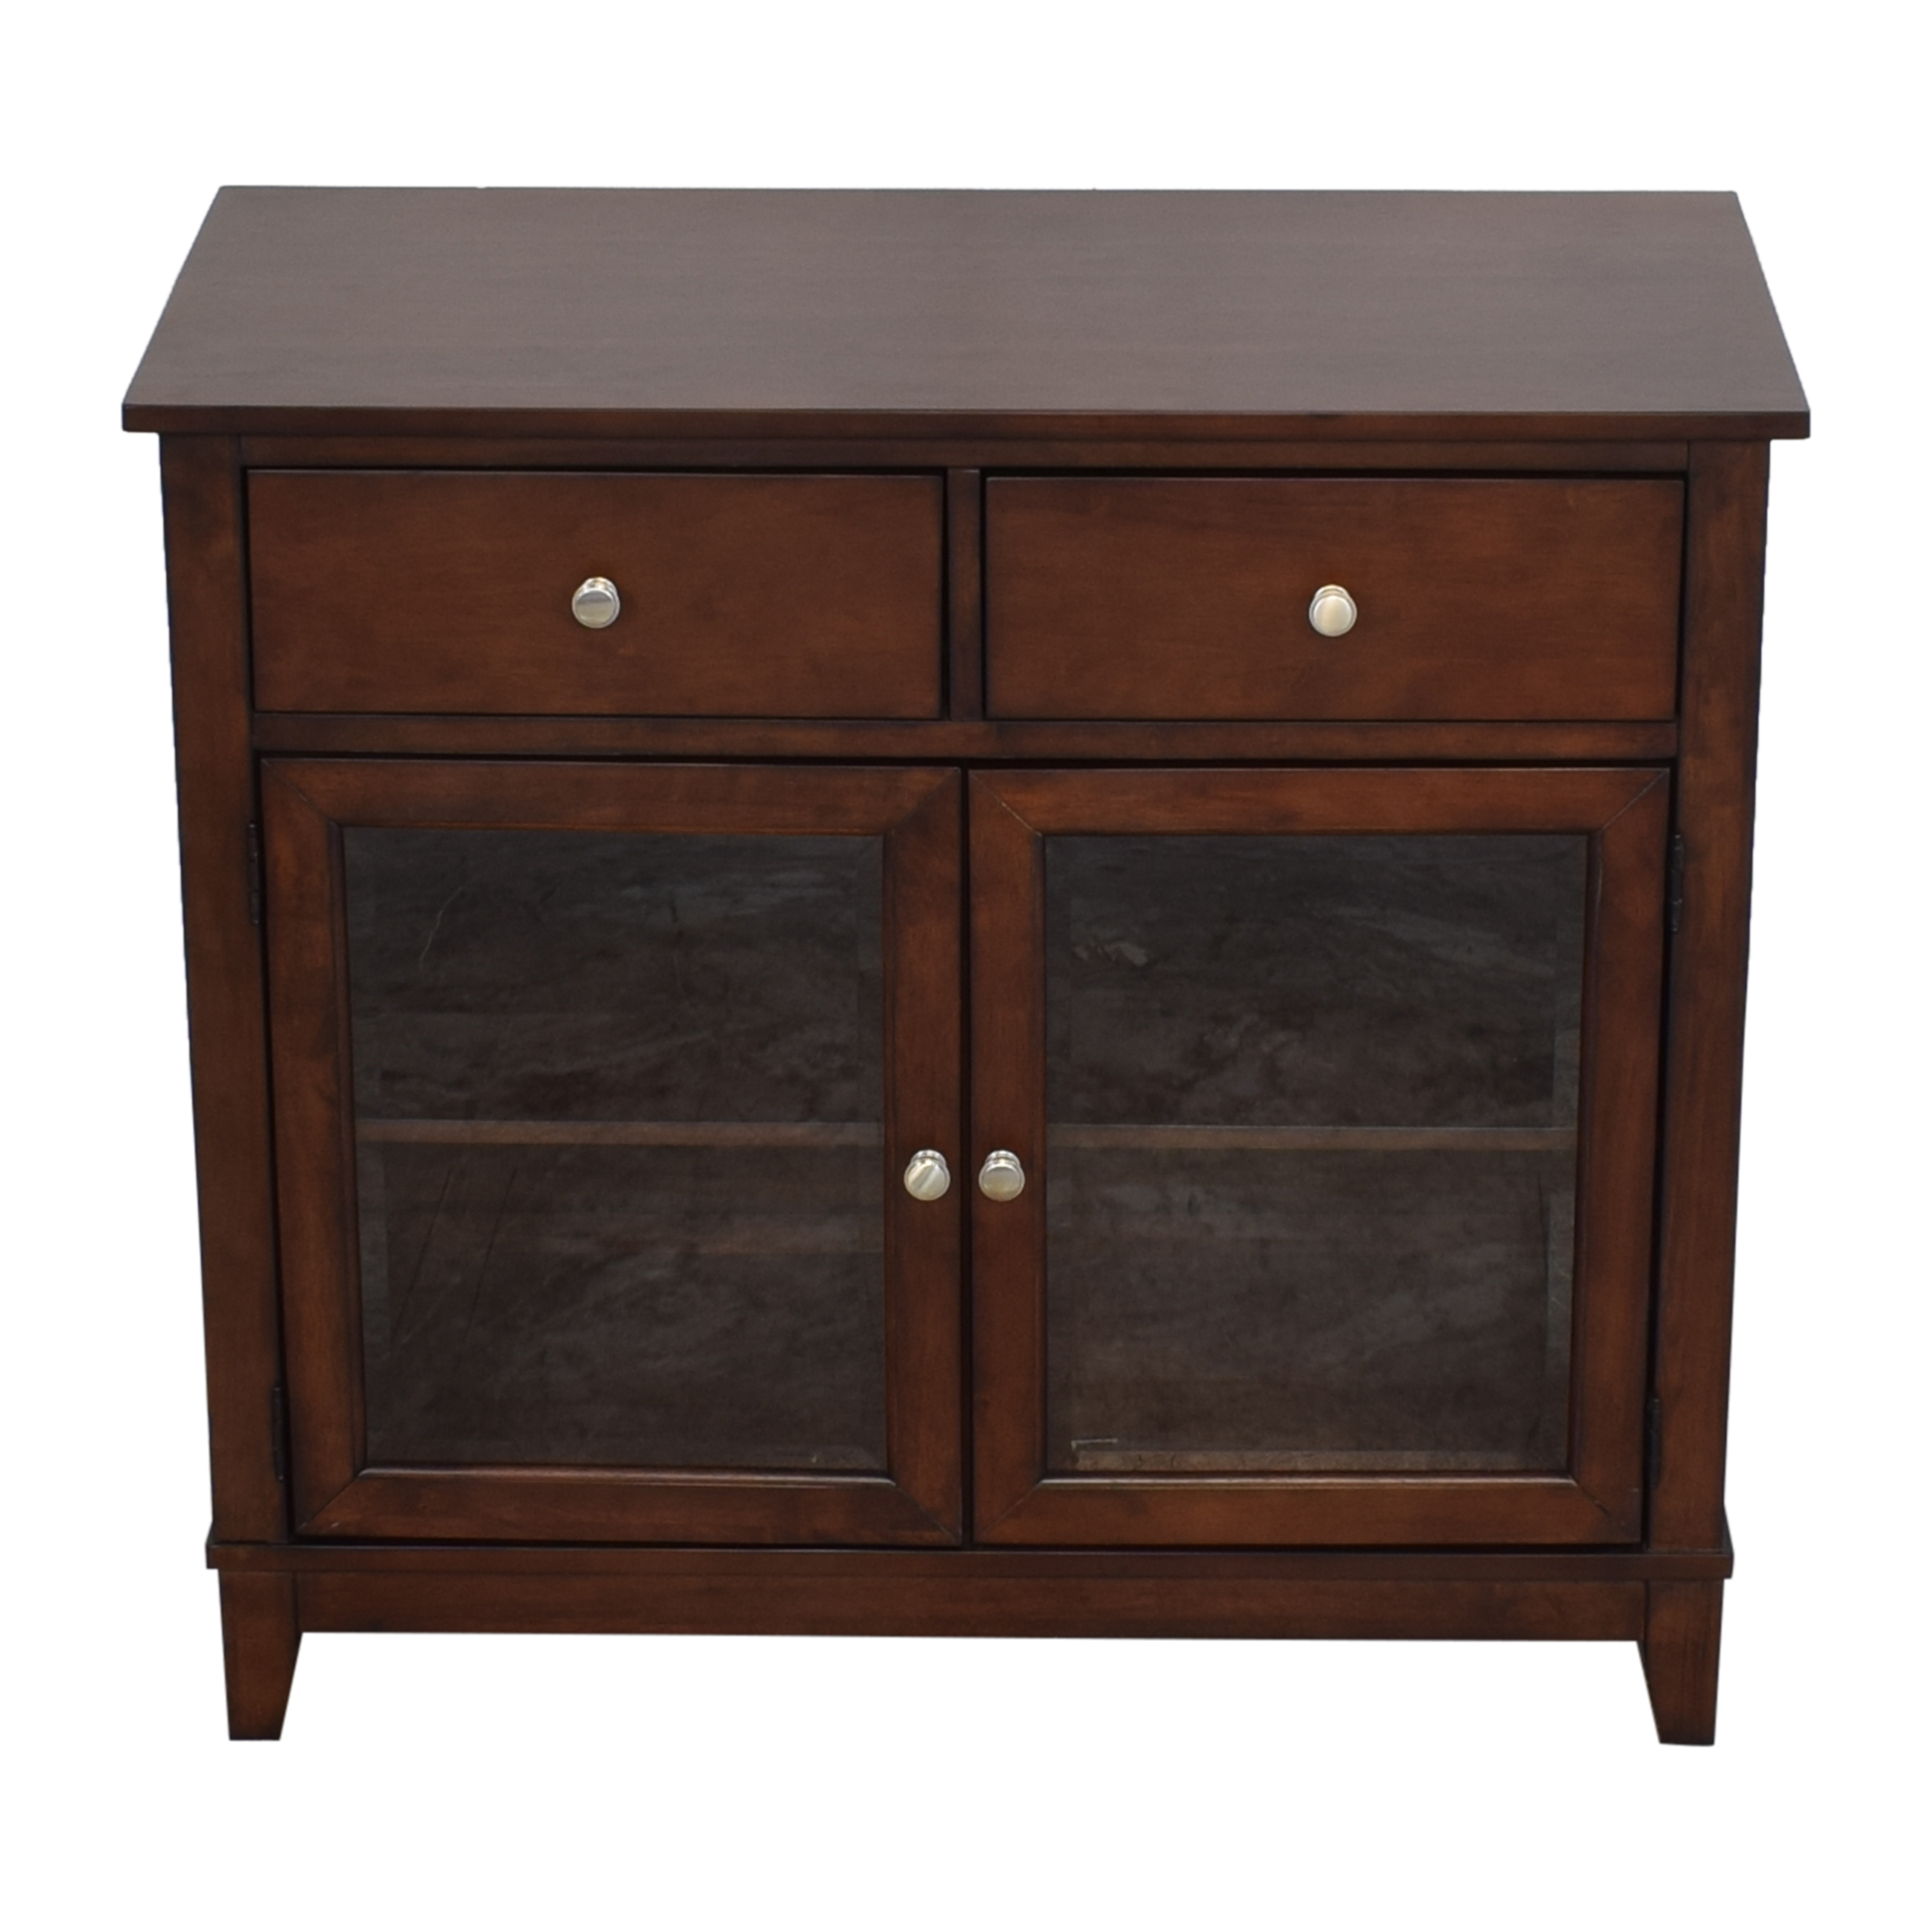 buy Raymour & Flanigan Two Door Buffet Server Raymour & Flanigan Cabinets & Sideboards